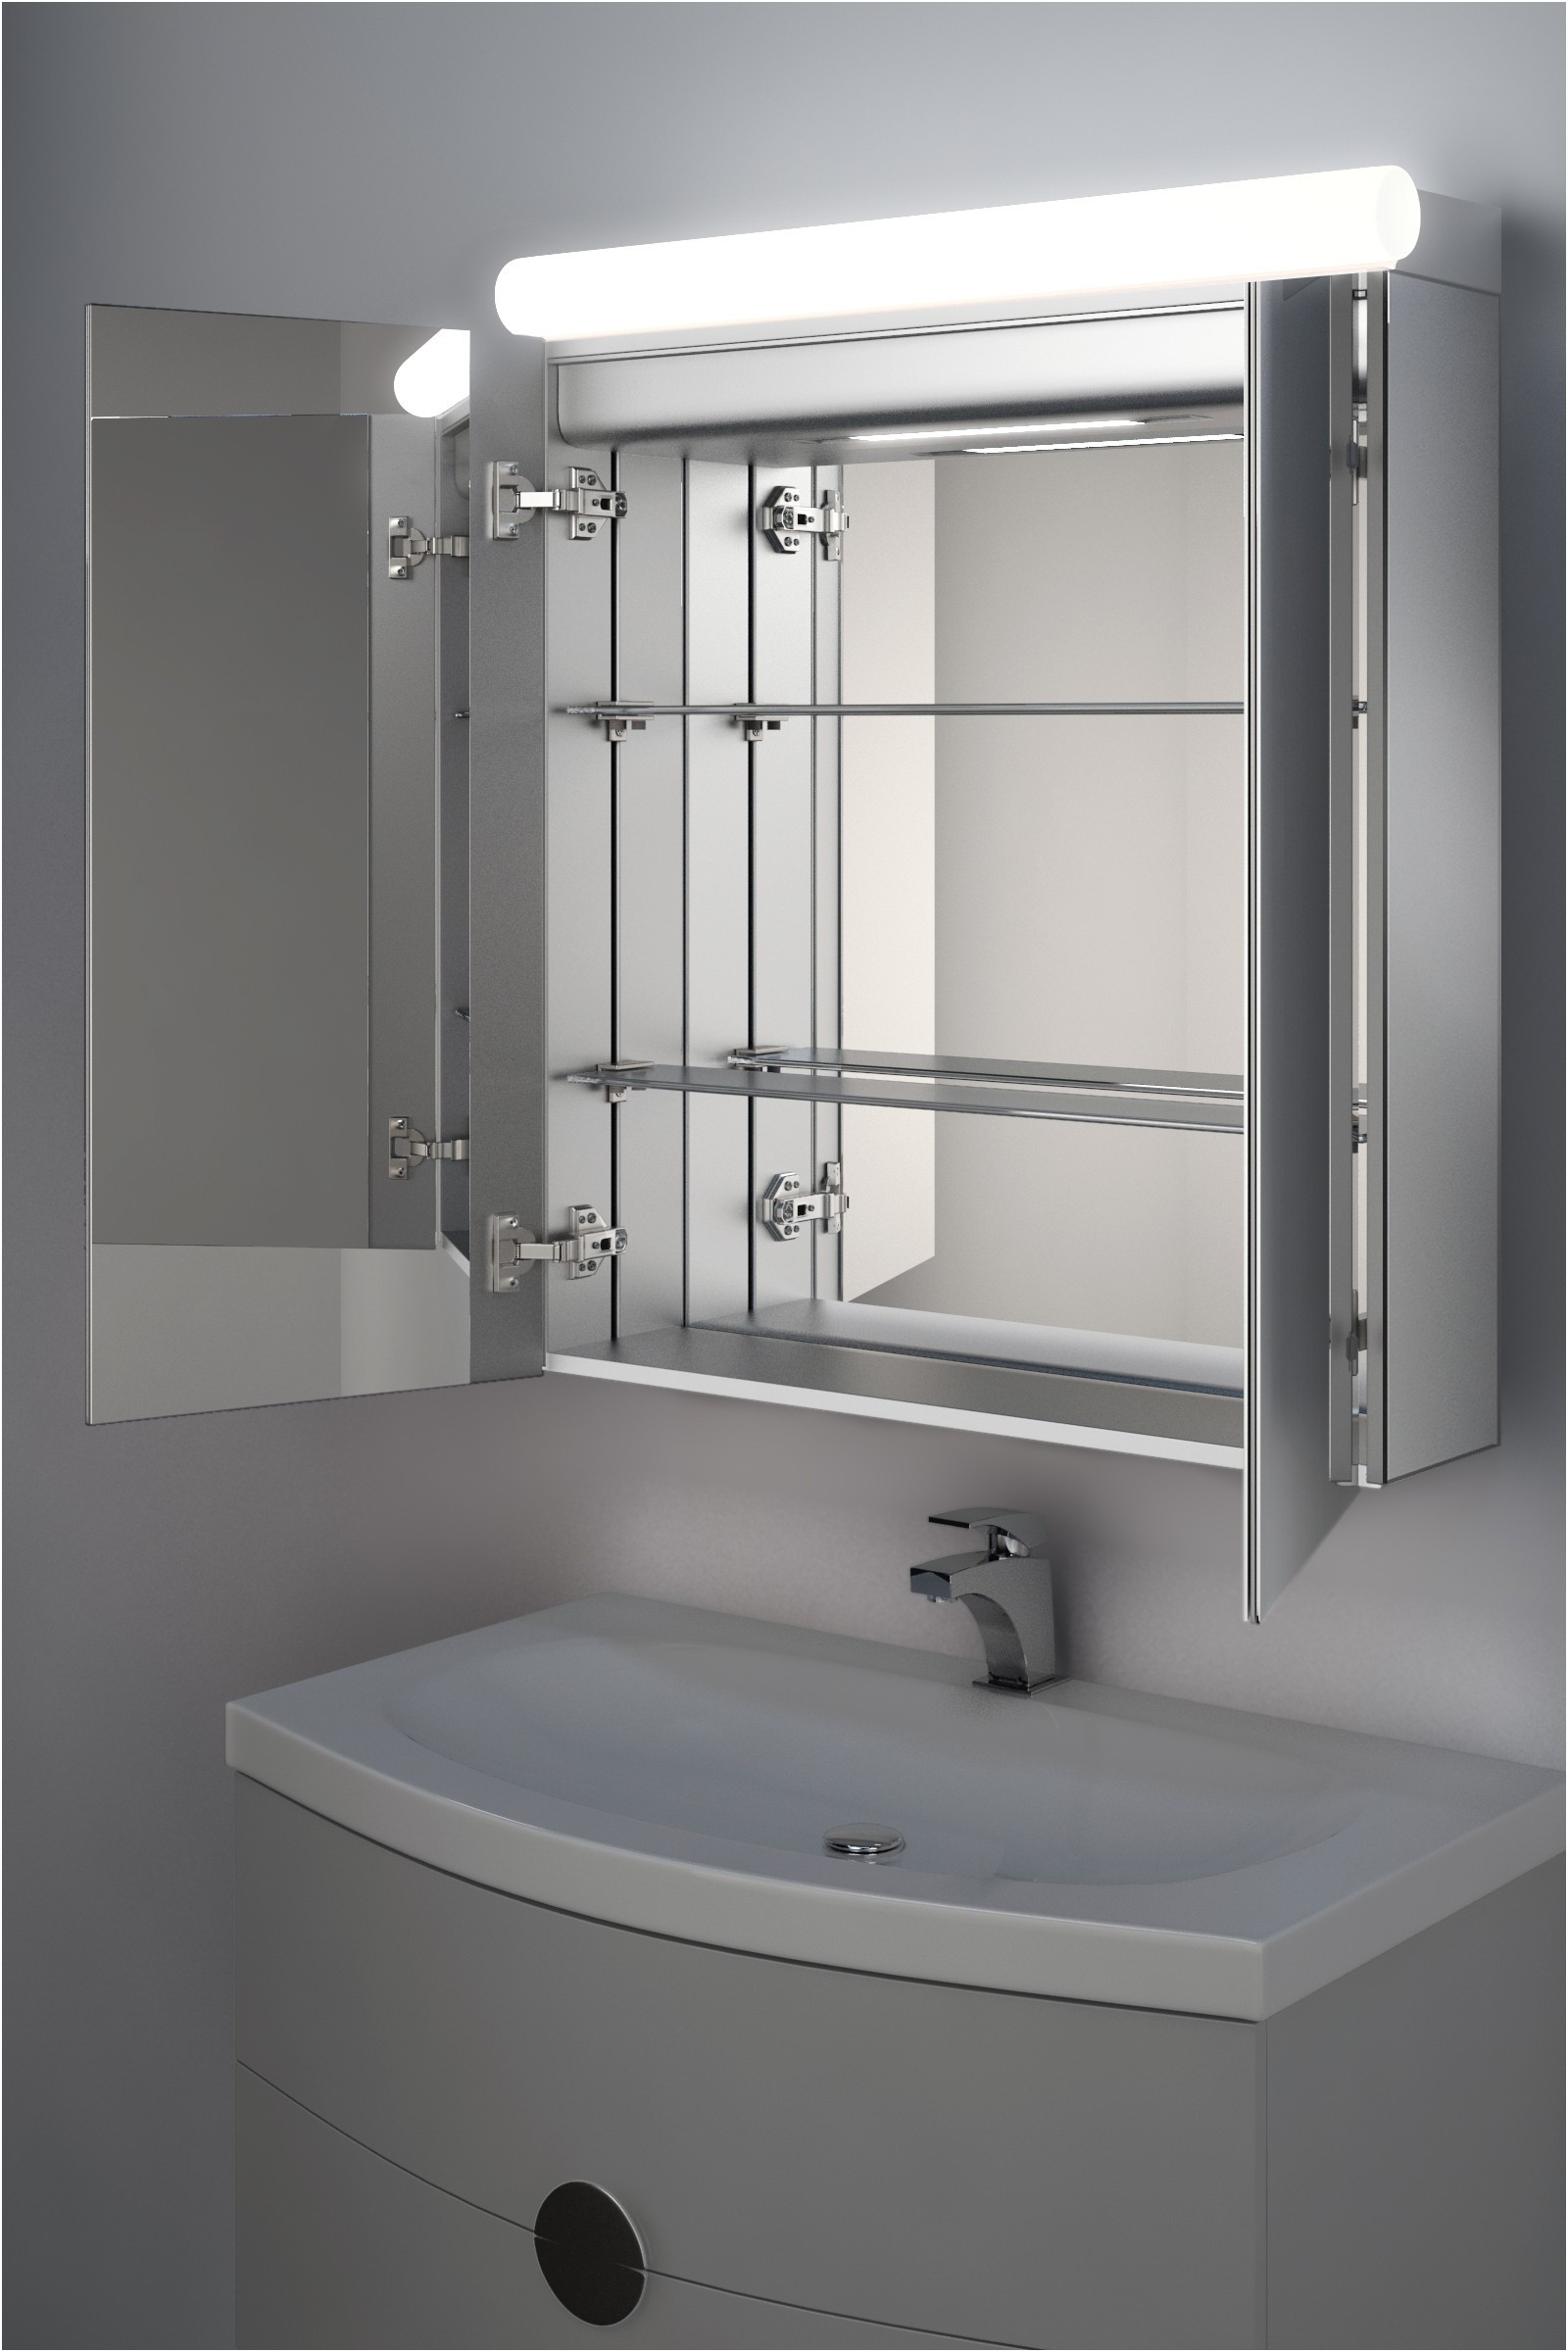 800mm Wide Mirrored Bathroom Cabinet Fresh Taniya top Light Diffuser Cabinet with Bluetooth Audio H 700mm X W